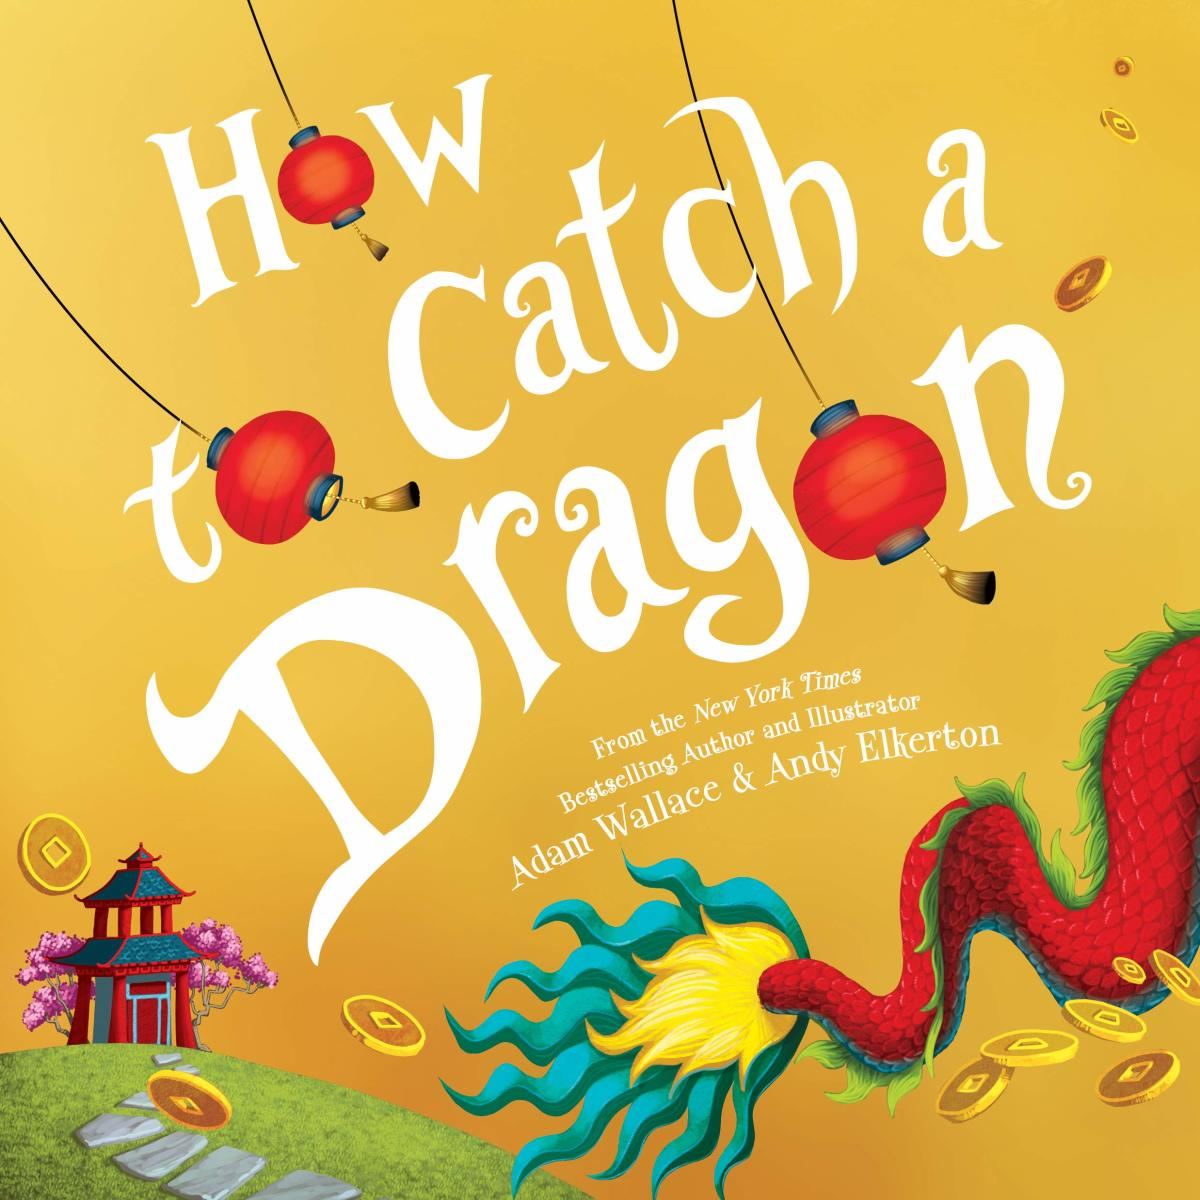 How to Catch a Dragon by Adam Wallace and Andy Elkerton